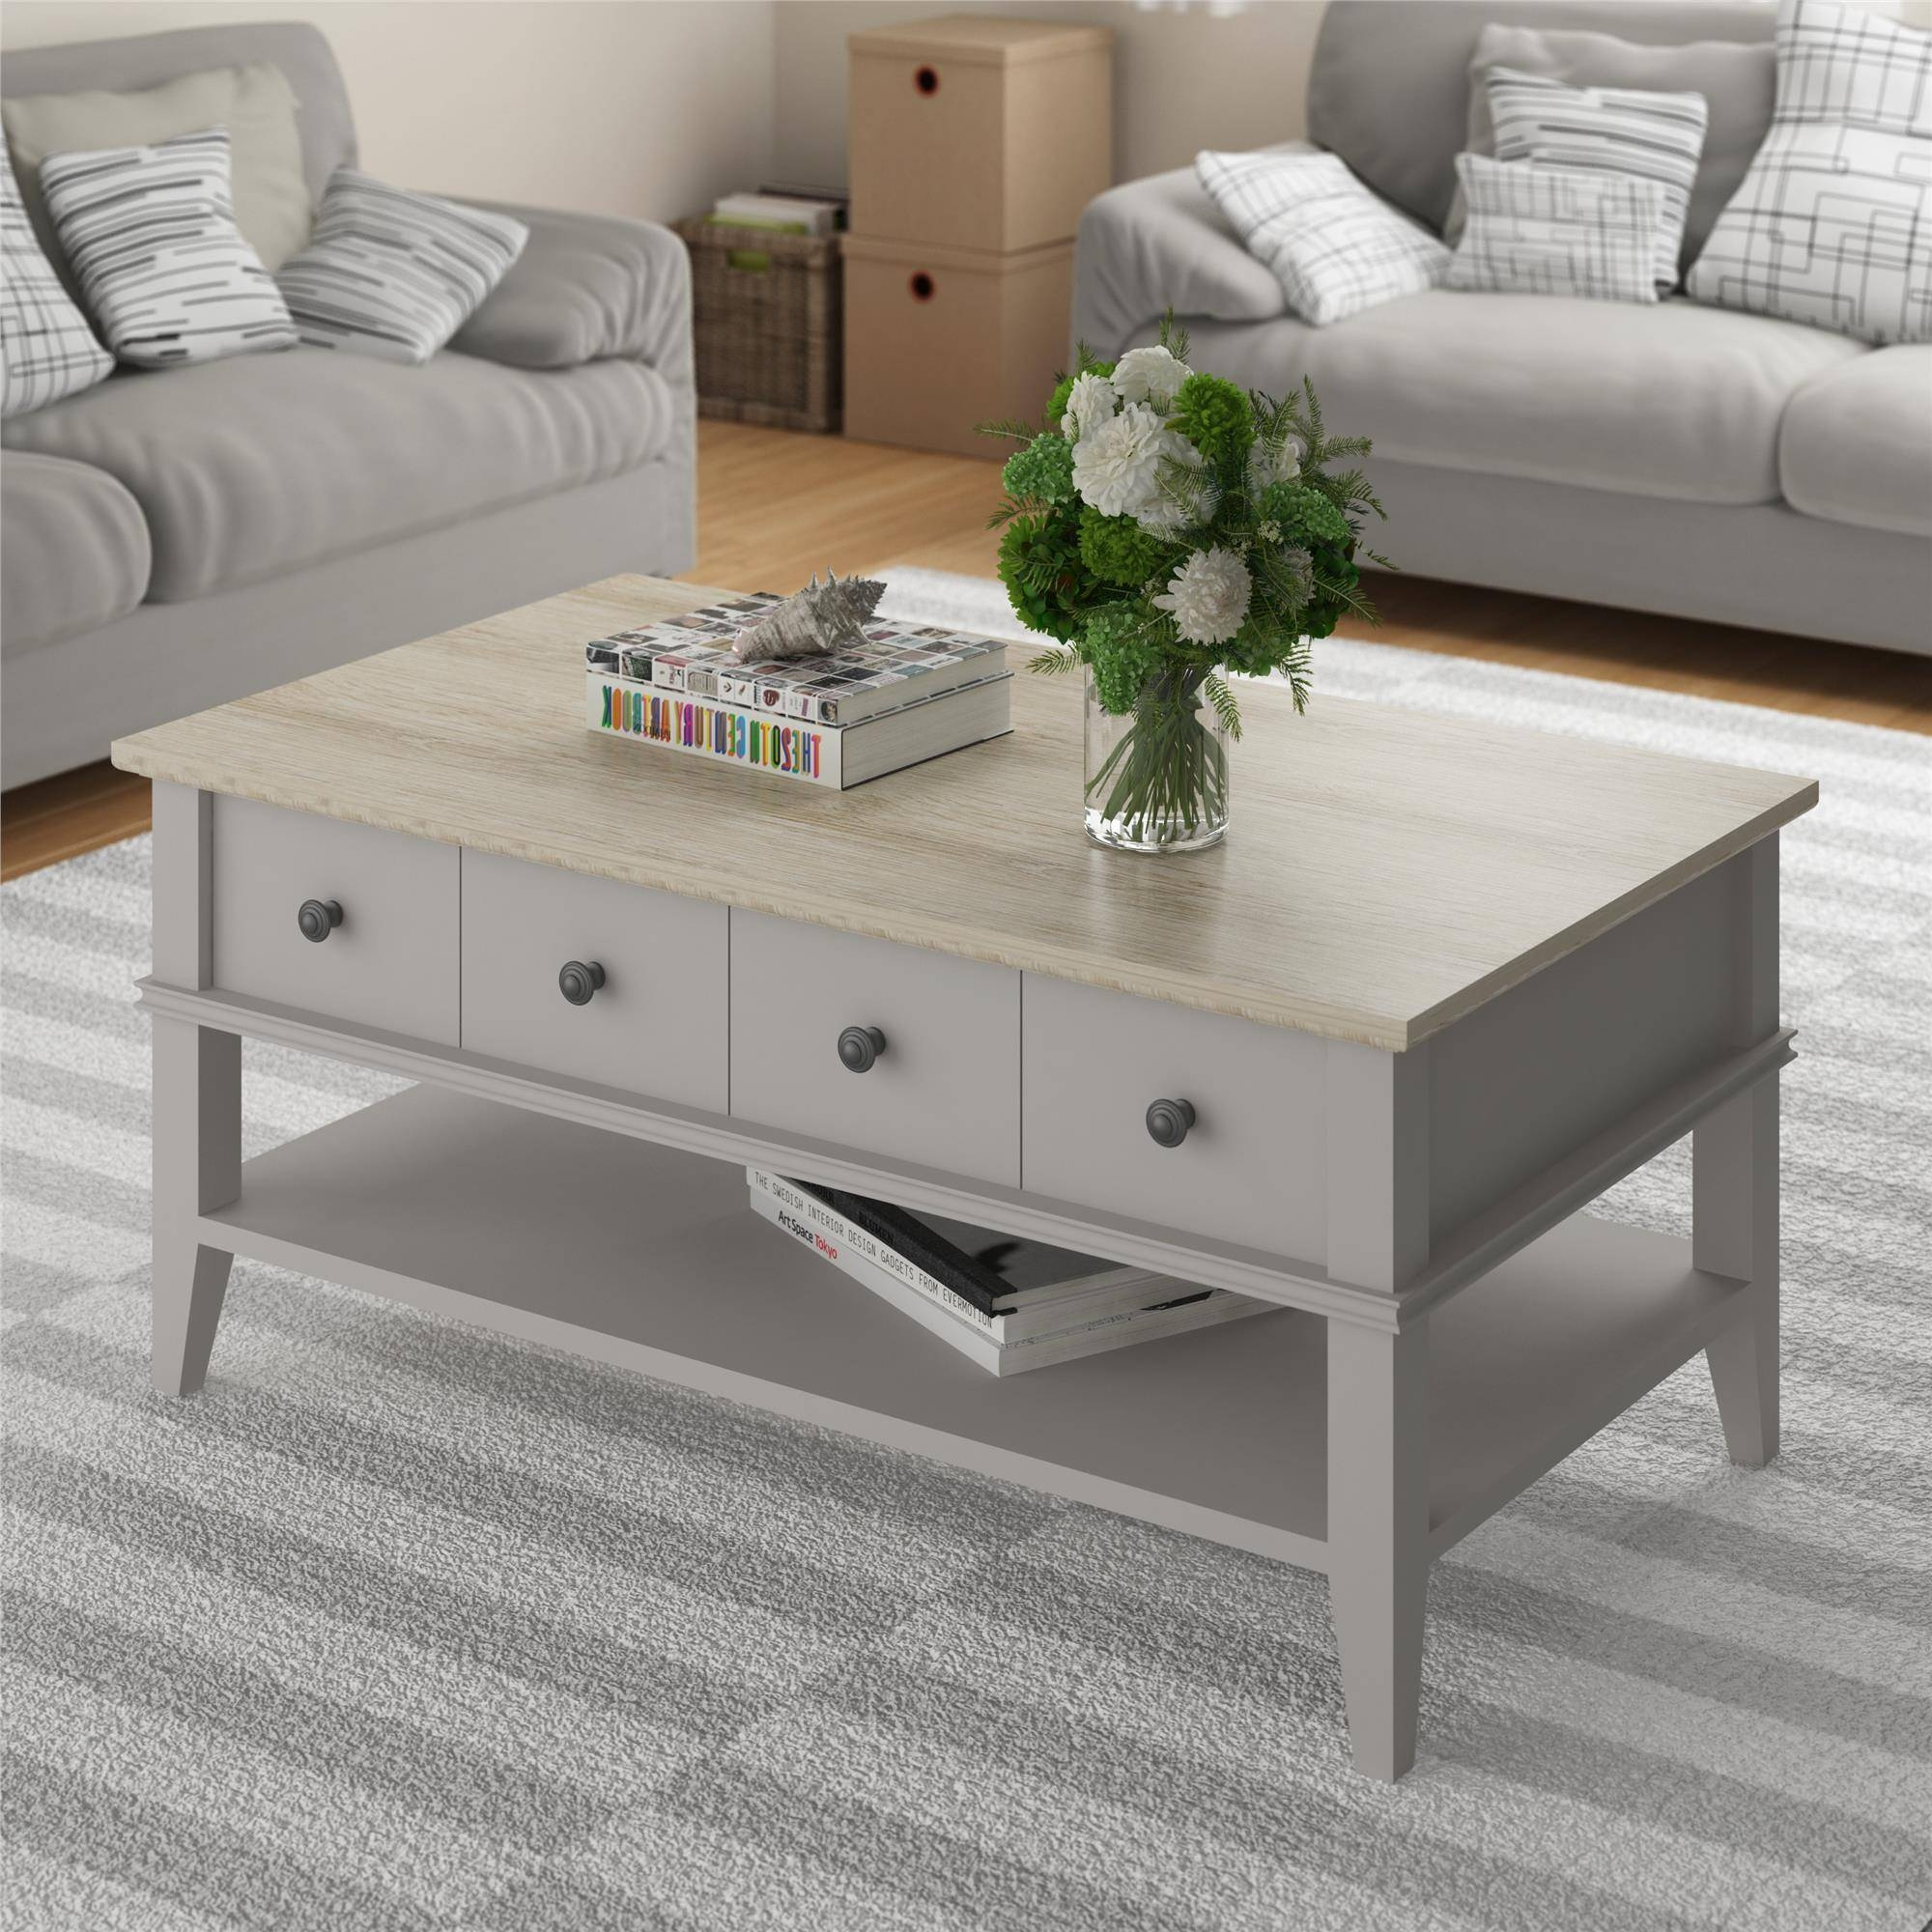 Ameriwood Furniture | Newport Coffee Table, Taupe/natural pertaining to Gray Wood Coffee Tables (Image 2 of 30)